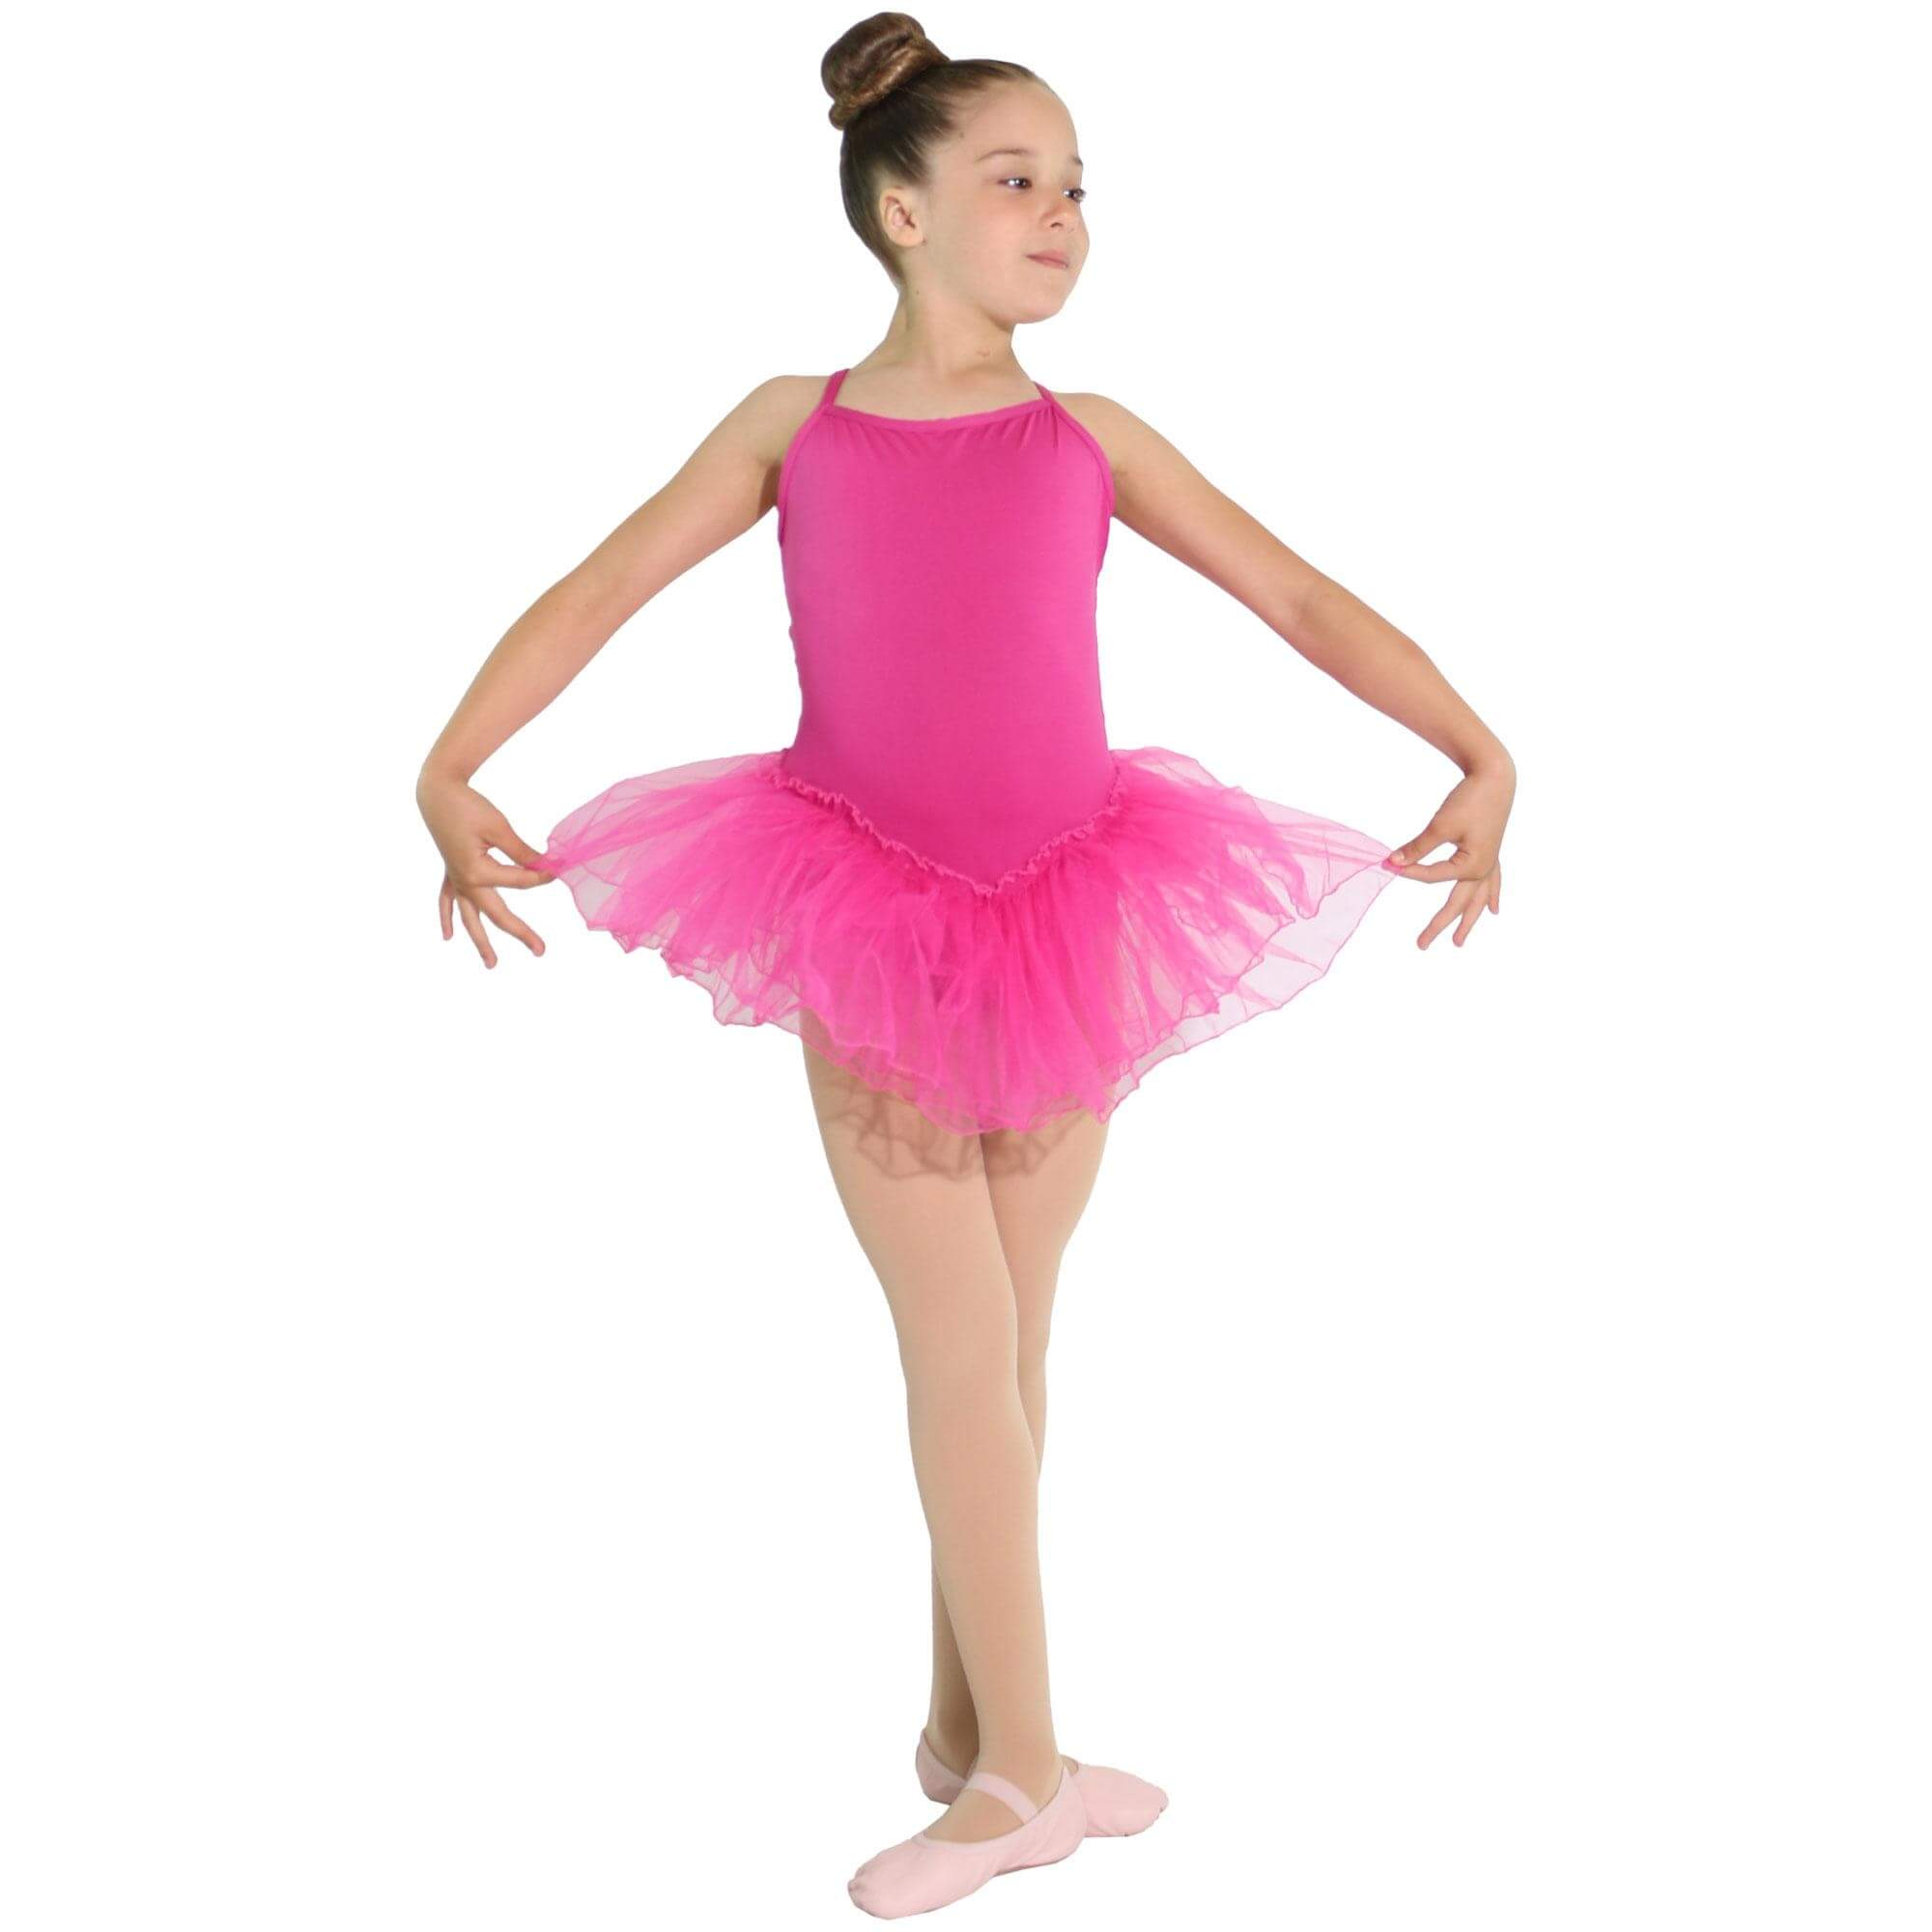 Reflectionz Spaghetti Strap Tutu Dress